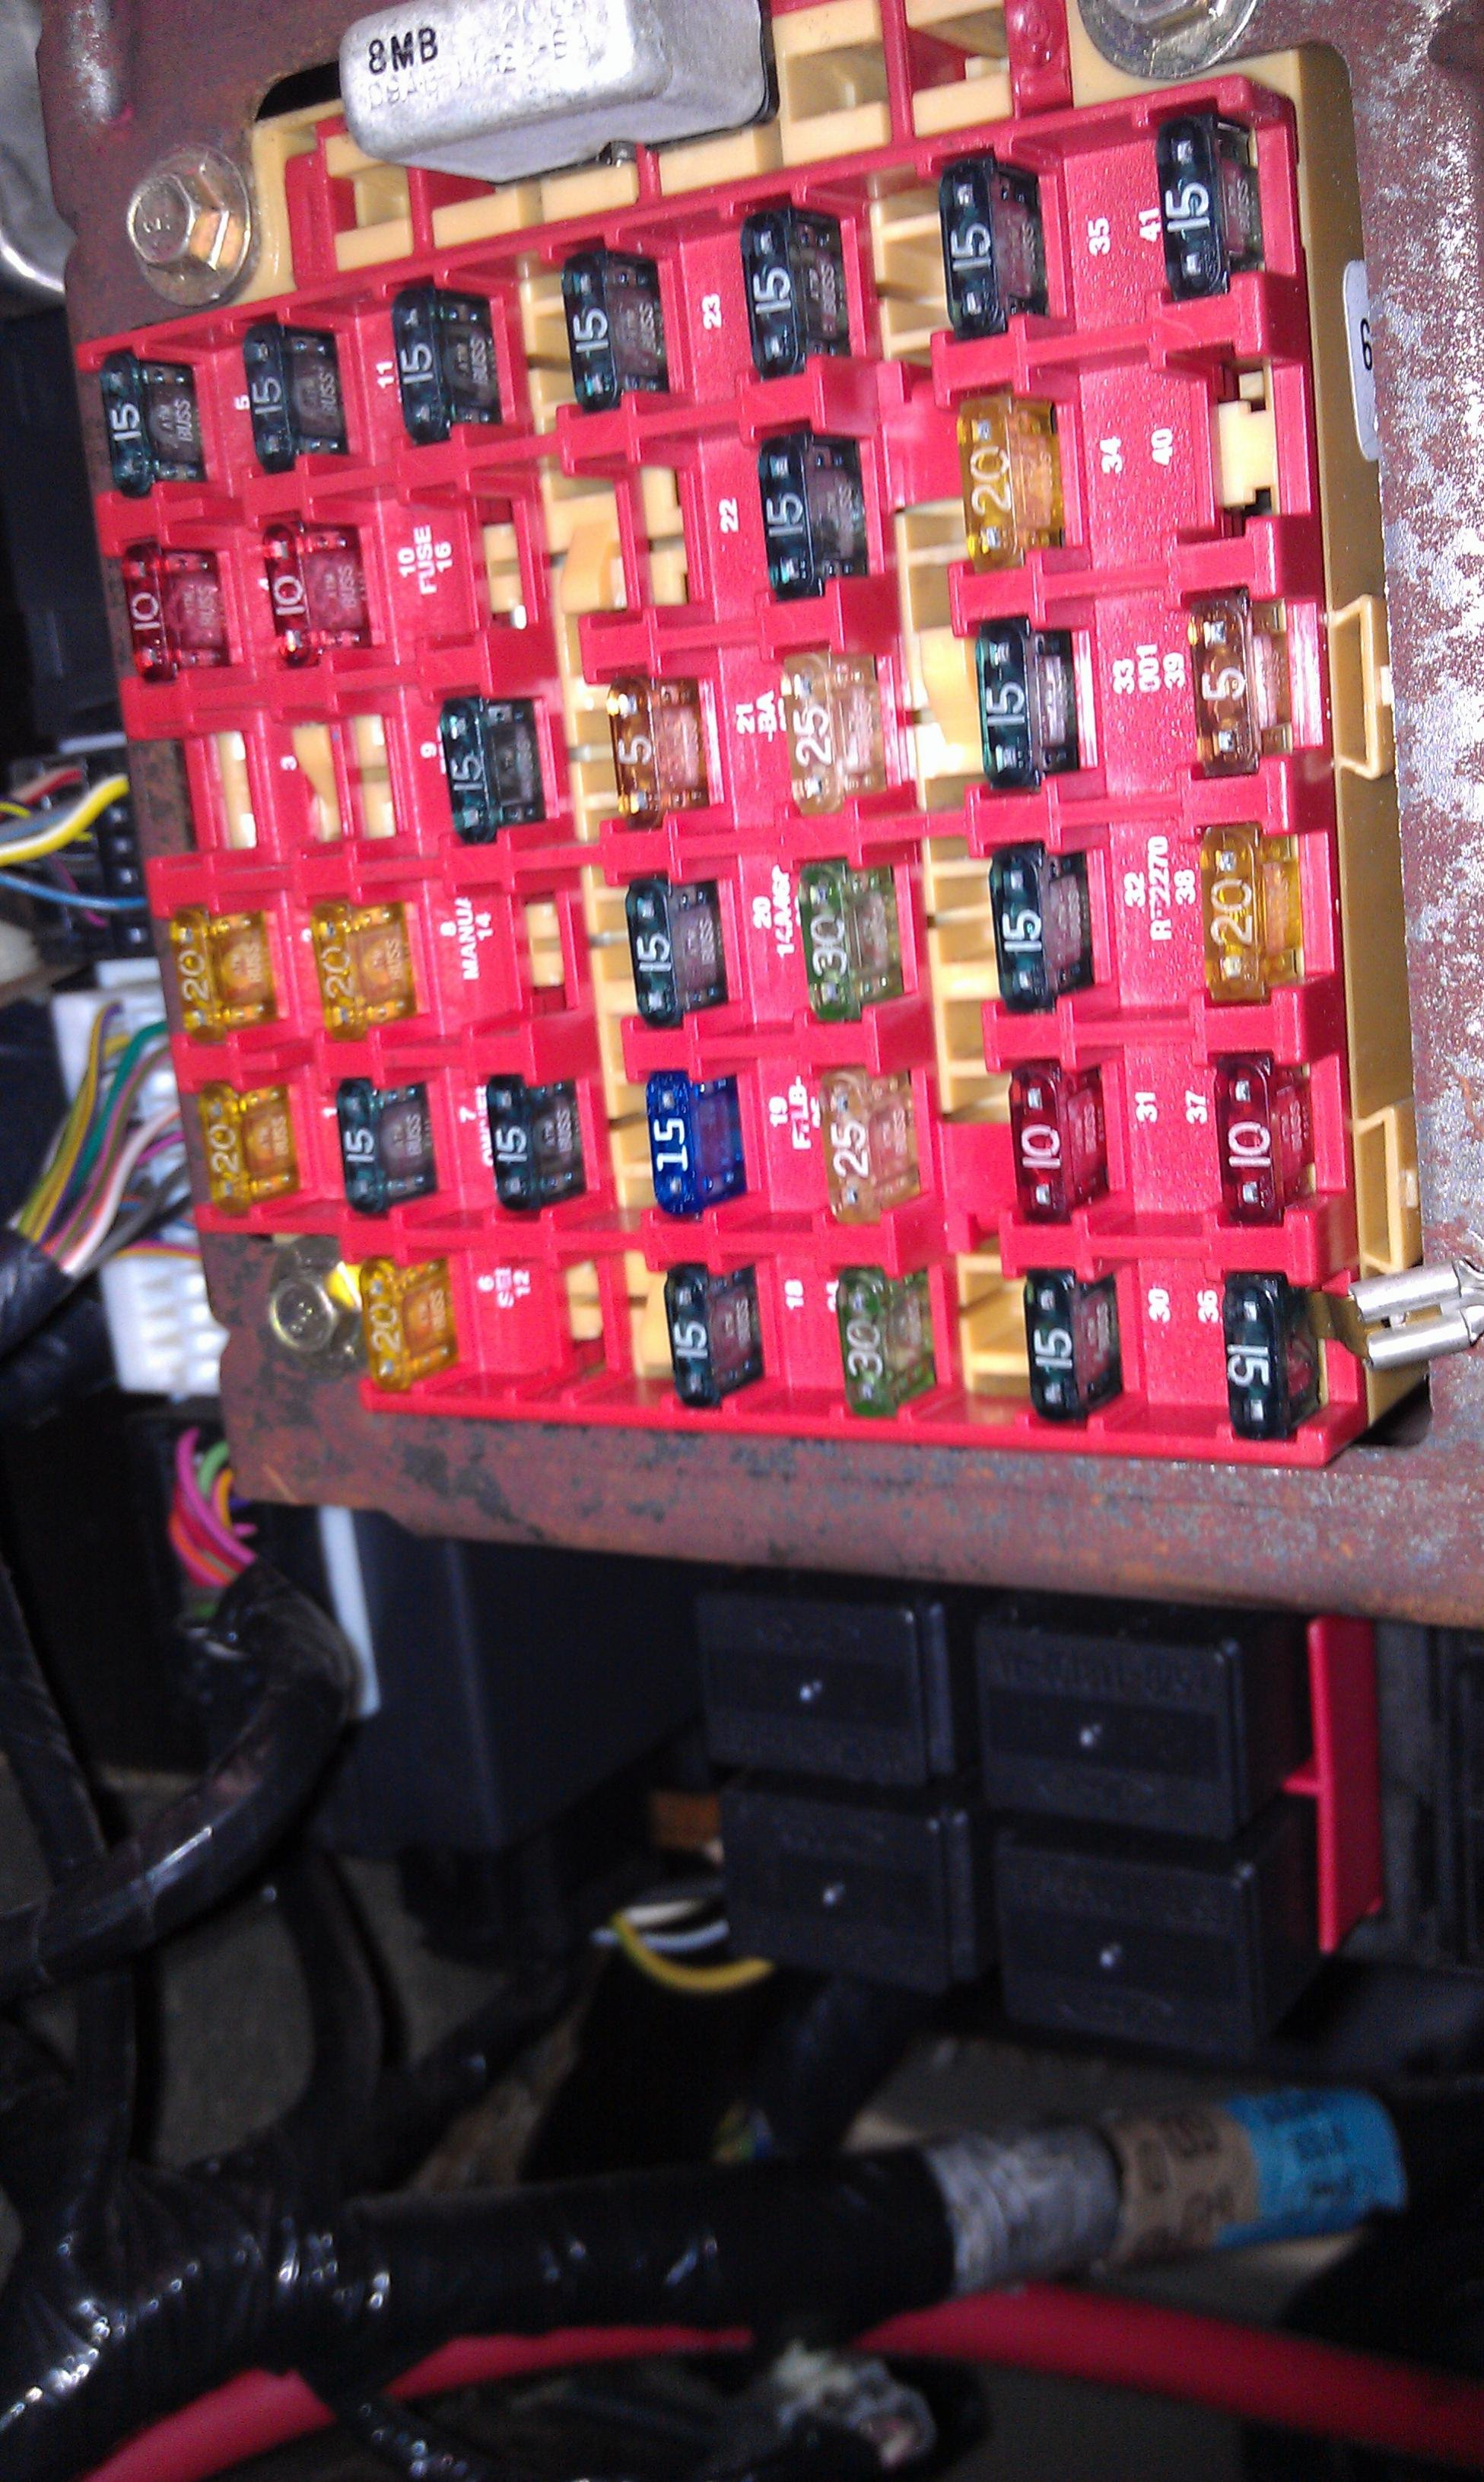 unidentified relays near the fuse box in 1999 mustang